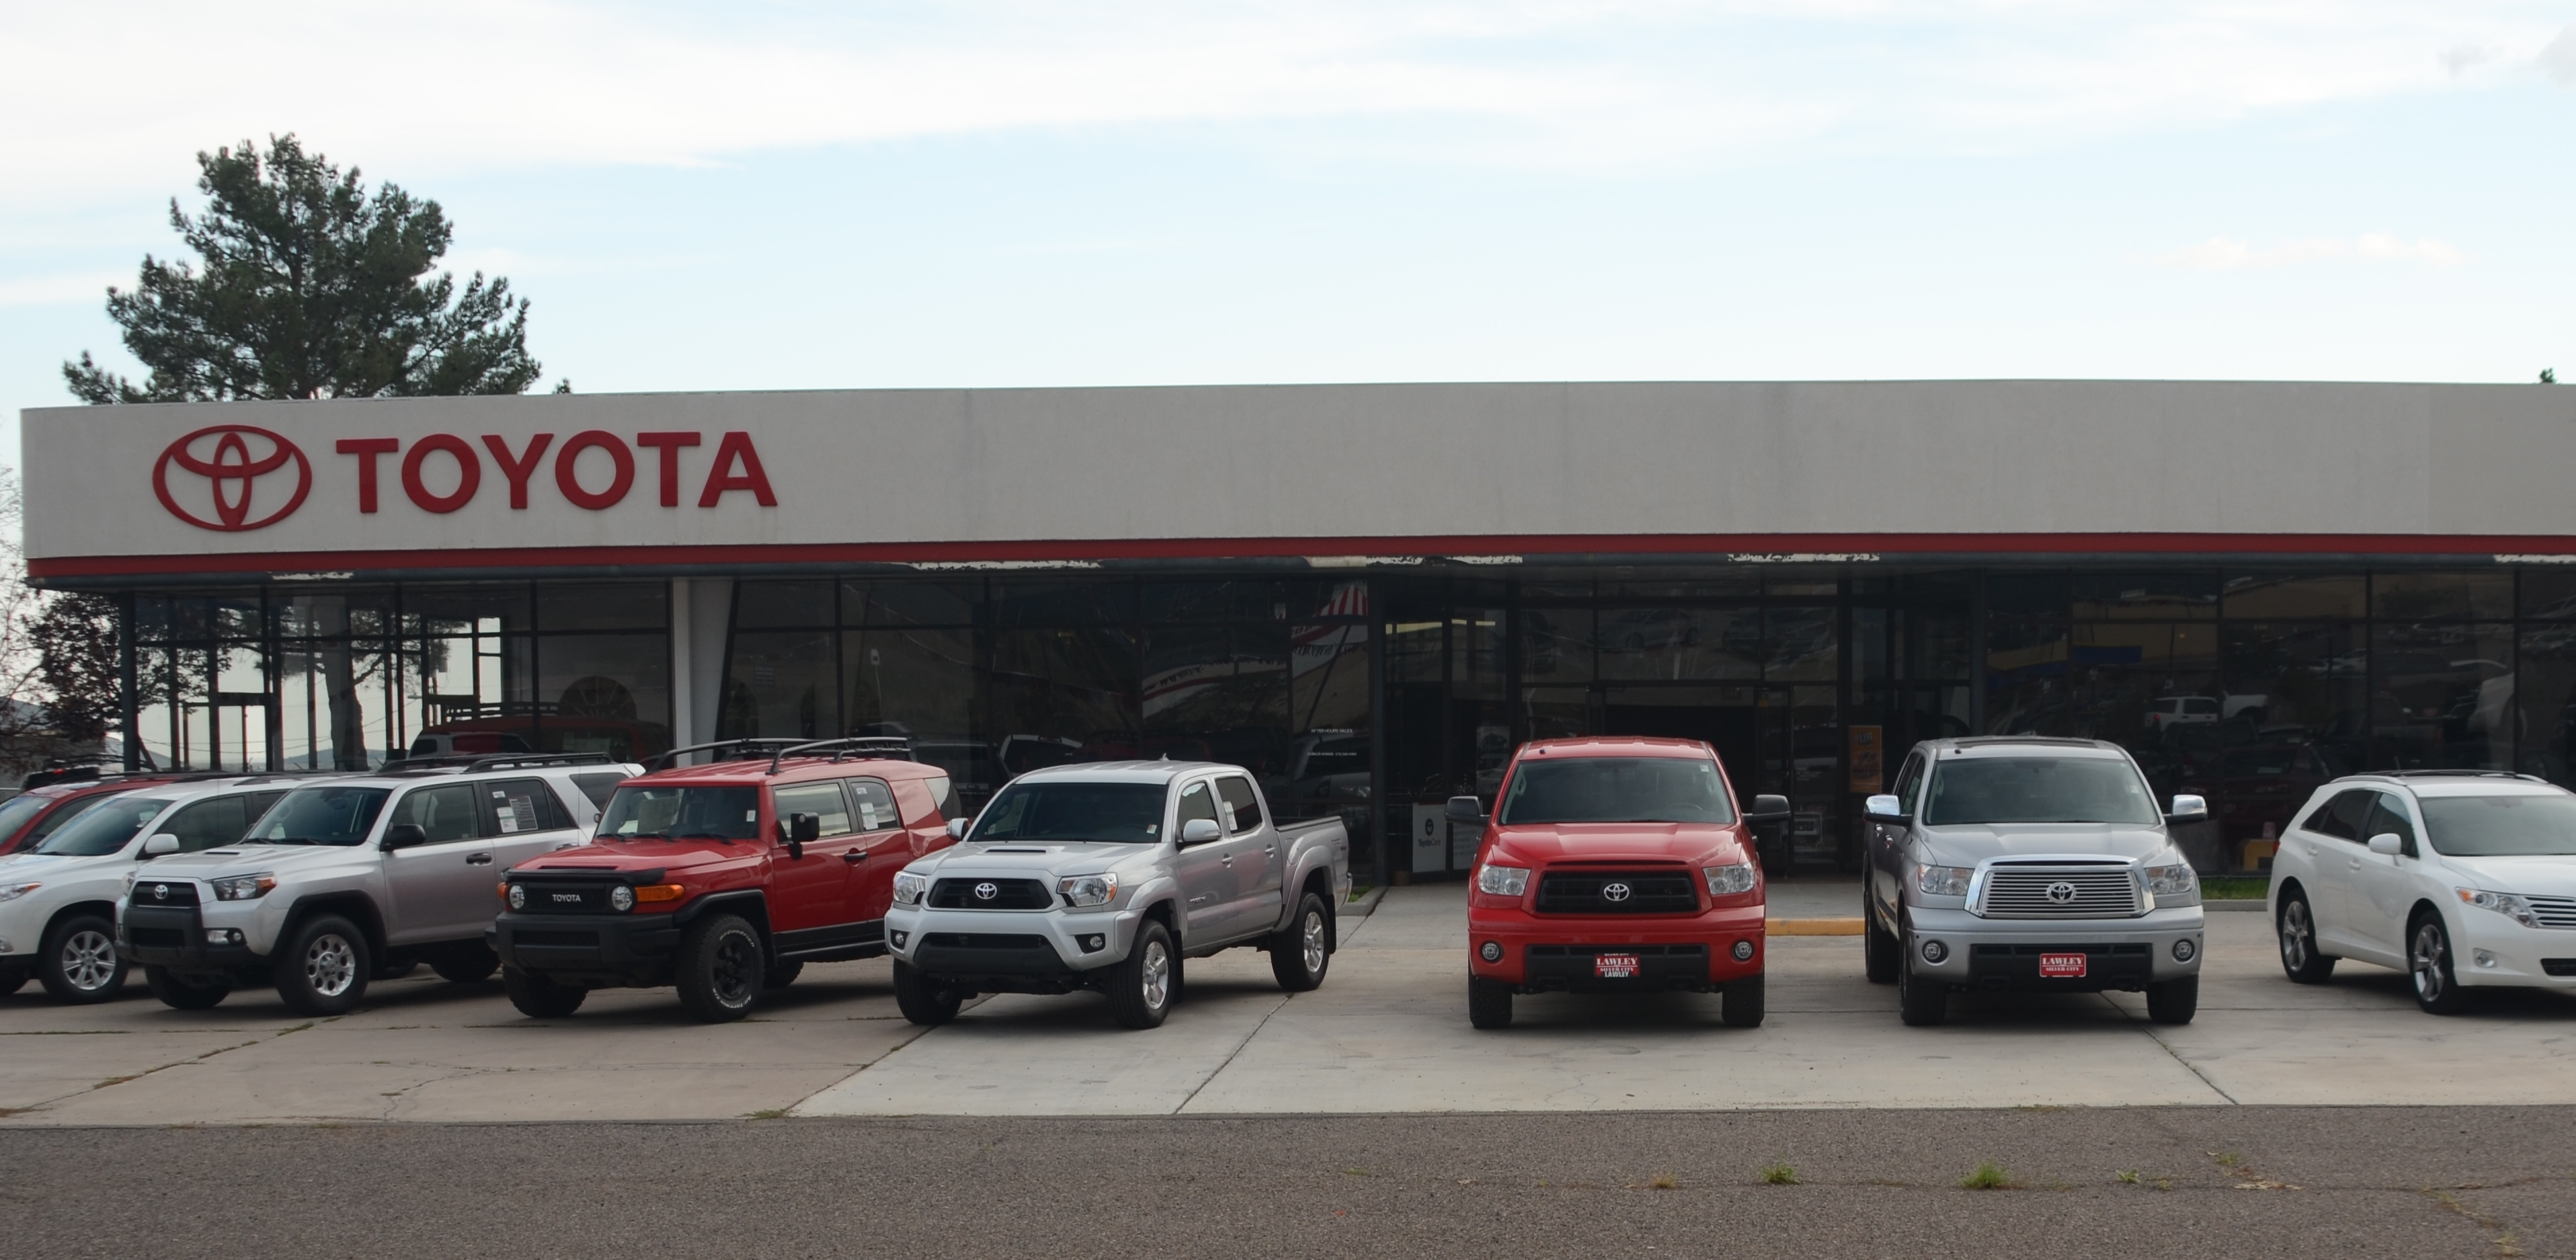 Lawley Toyota Dodge Chrysler Jeep